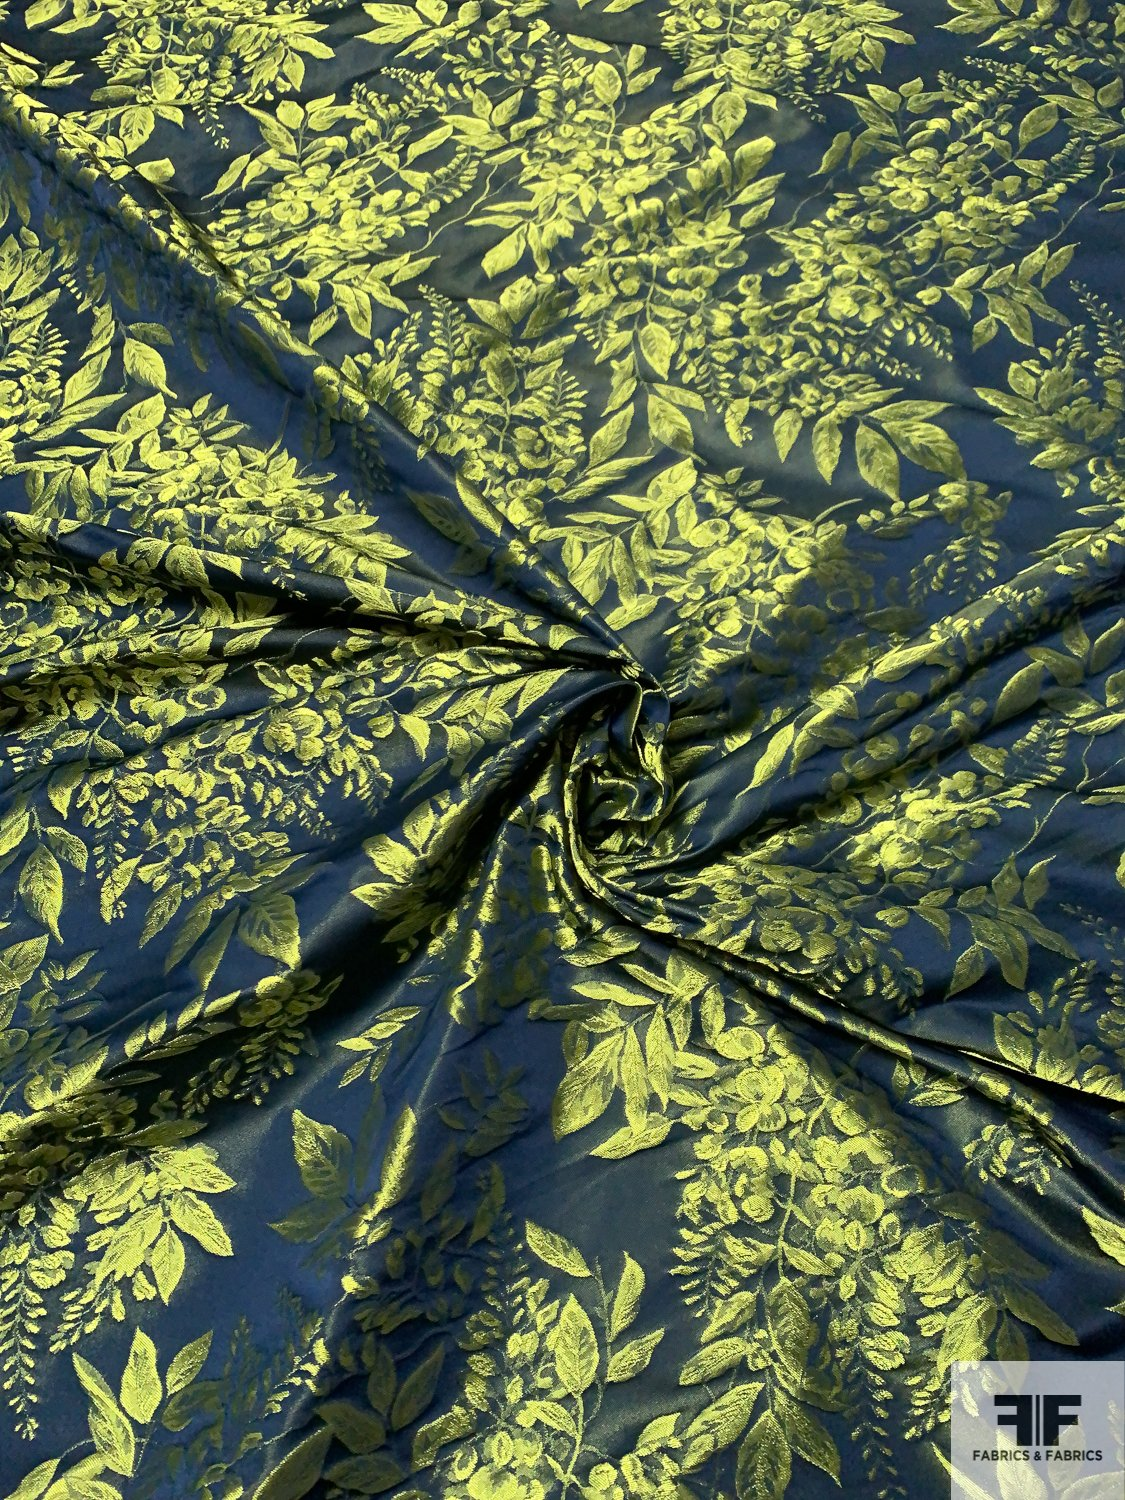 Made in Spain Romantic Iridescent Leaf Bouquet Satin Taffeta Jacquard - Lime Green / Navy